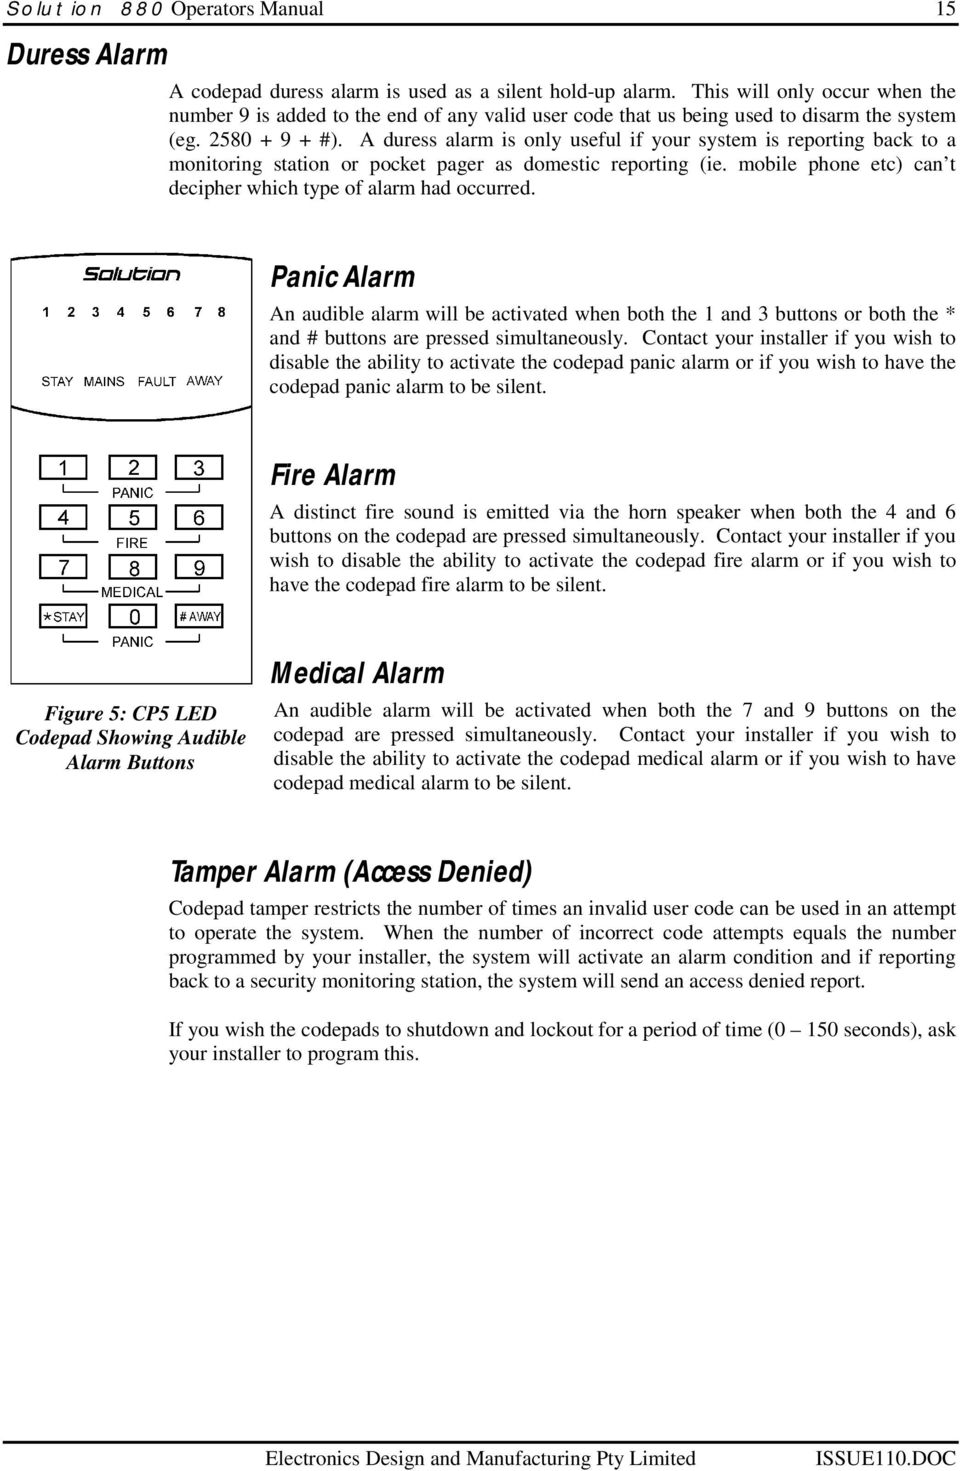 A duress alarm is only useful if your system is reporting back to a monitoring station or pocket pager as domestic reporting (ie. mobile phone etc) can t decipher which type of alarm had occurred.